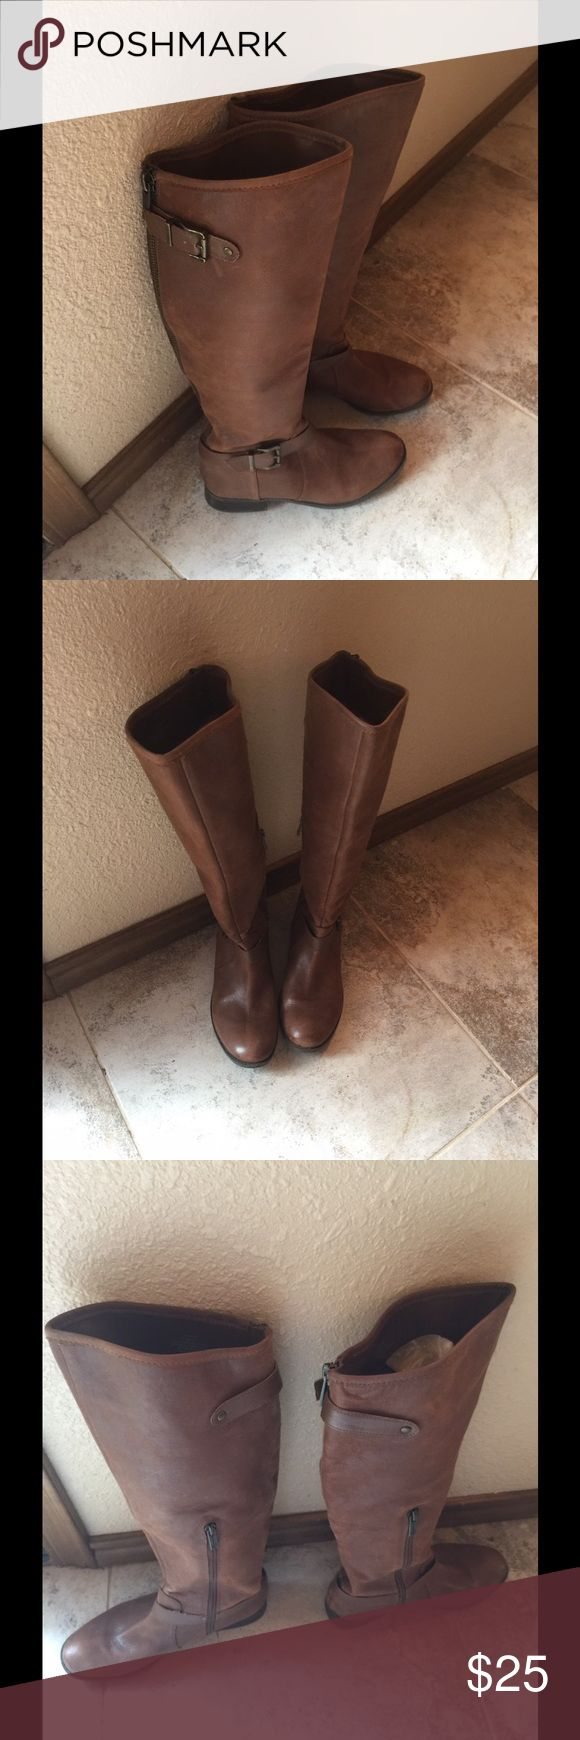 Jessica Simpson leather boots size 7.5 EUC Cute Jessica Simpson leather boots size 7.5 Jessica Simpson Shoes Heeled Boots